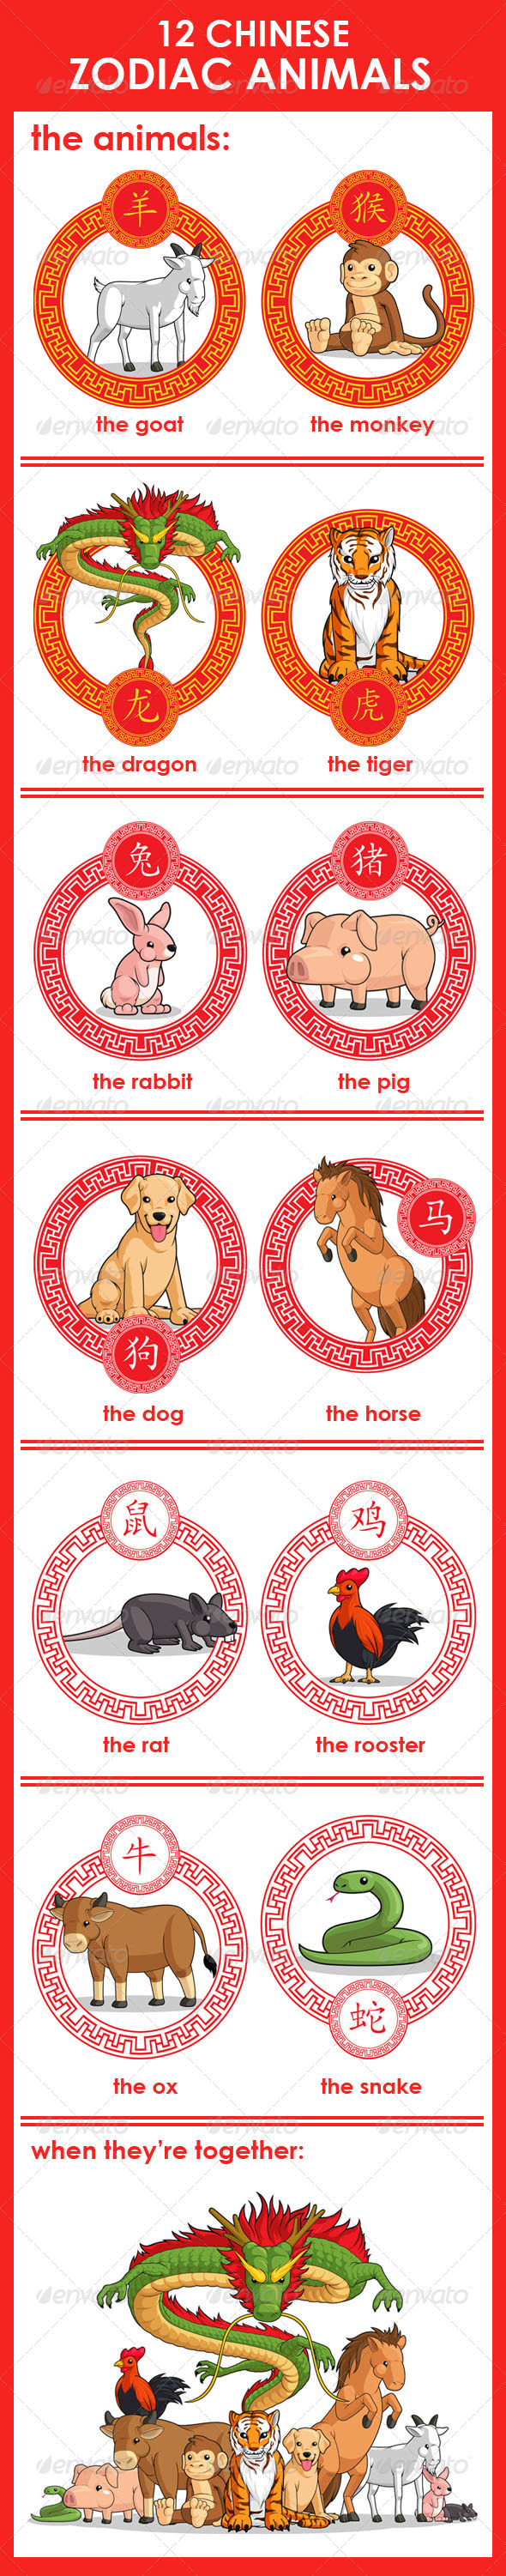 GraphicRiver 12 Chinese Zodiac Animals 8089799